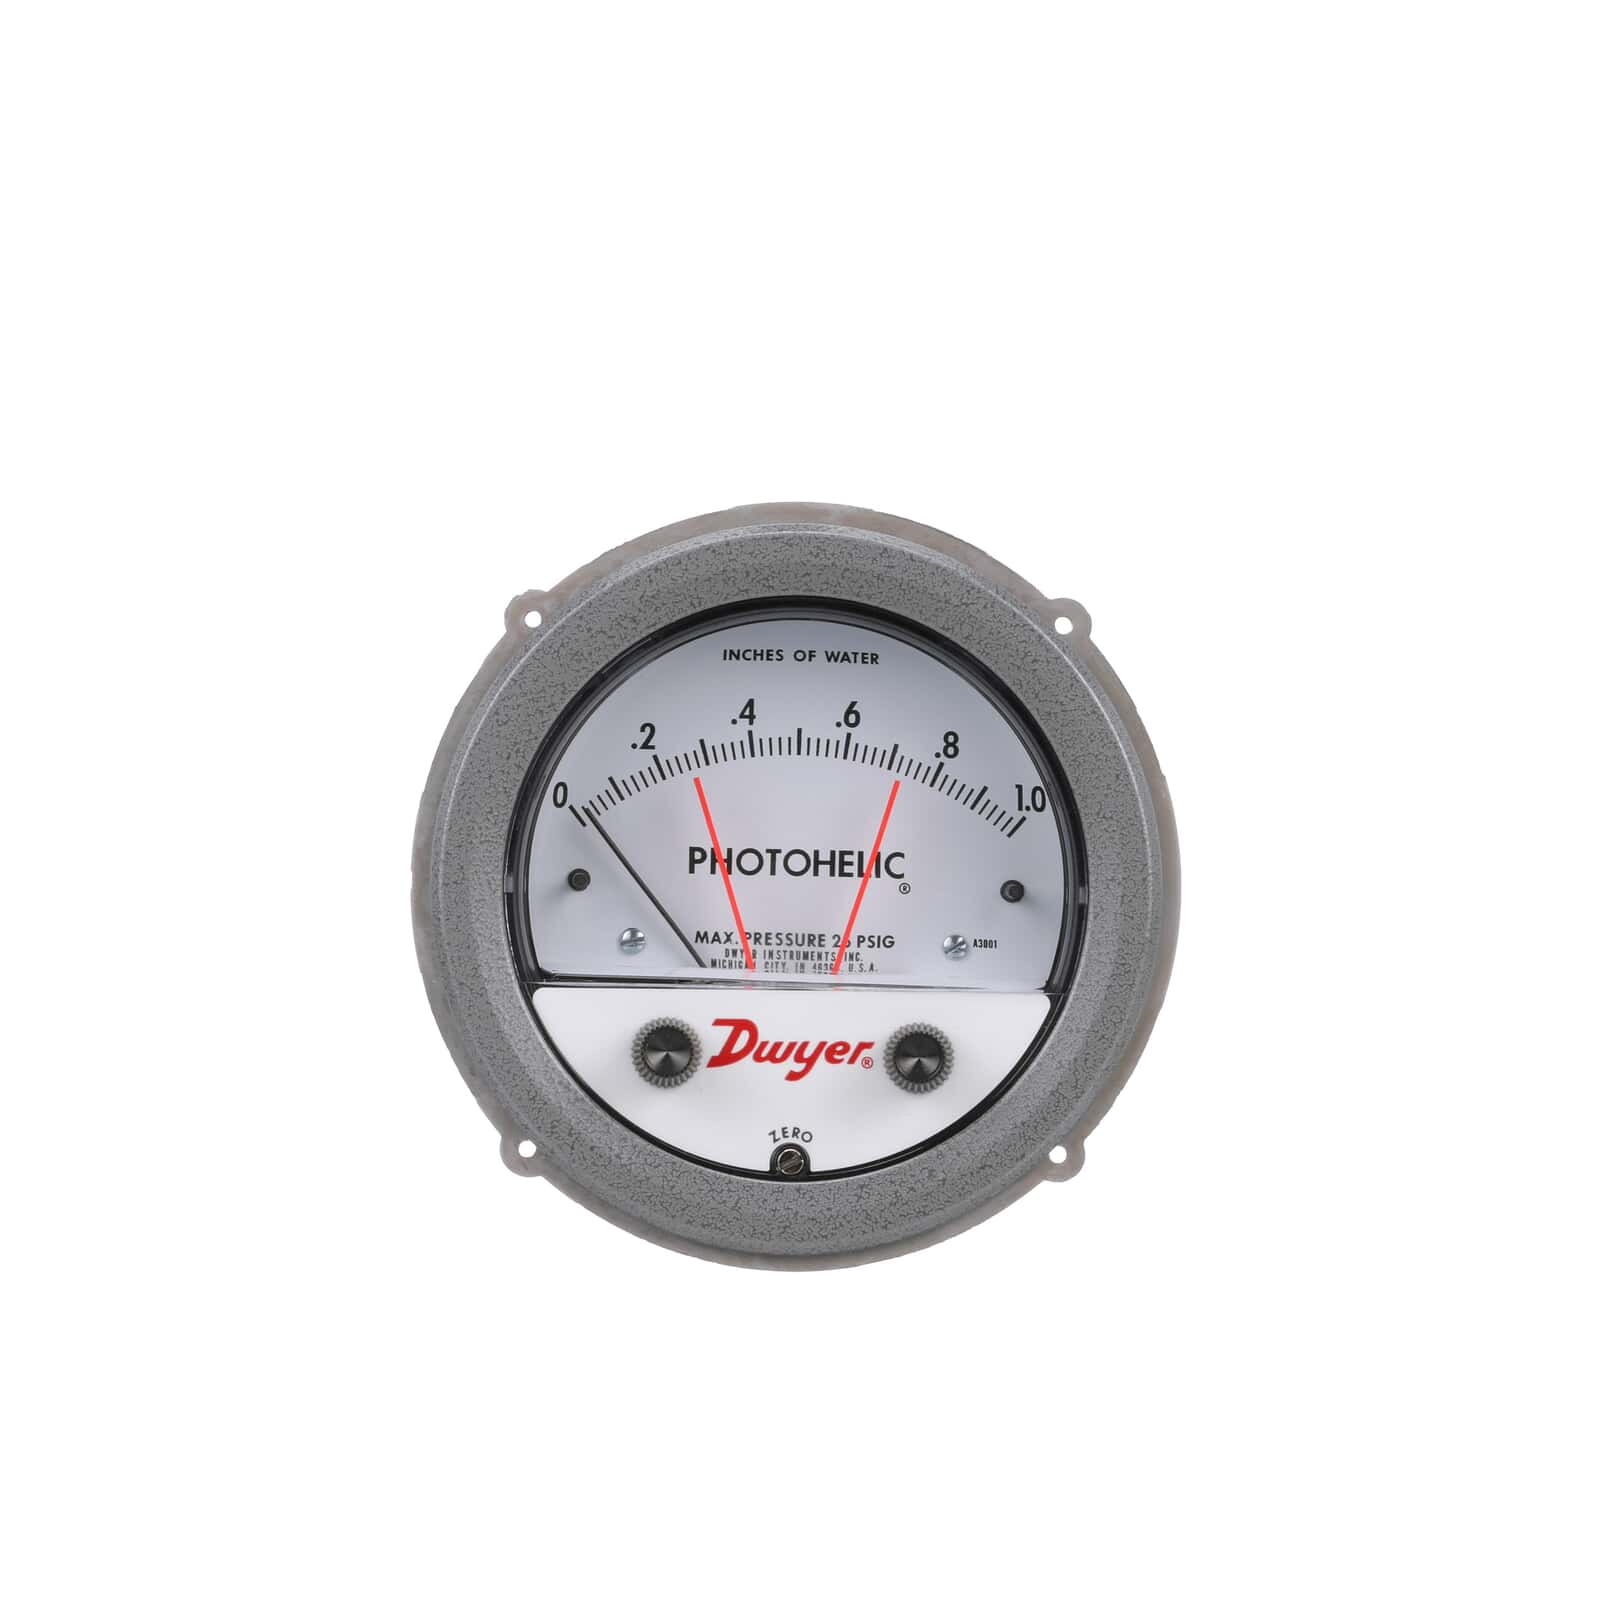 Series A3000 Photohelic Pressure Switch Gage Functions As Installing A 3way With Wiring Diagrams The Home Swipe To Spin